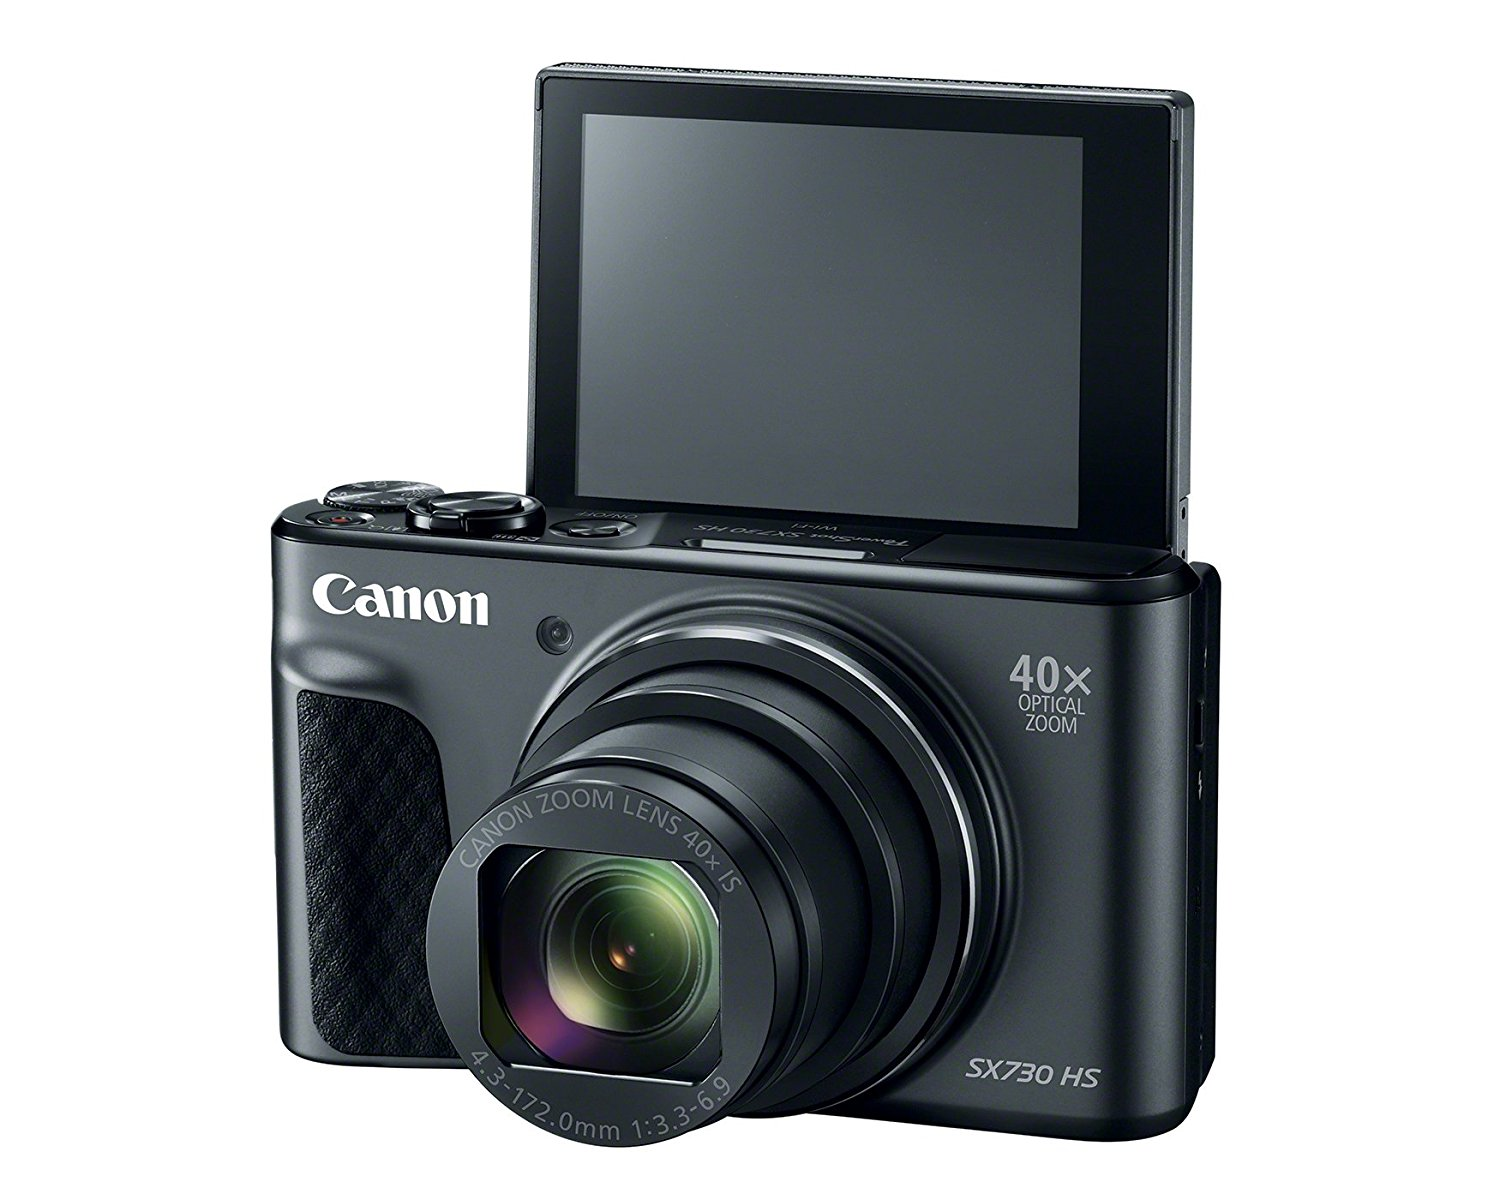 canon powershot sx730 hs announced priced 399 available for pre order camera rumors. Black Bedroom Furniture Sets. Home Design Ideas